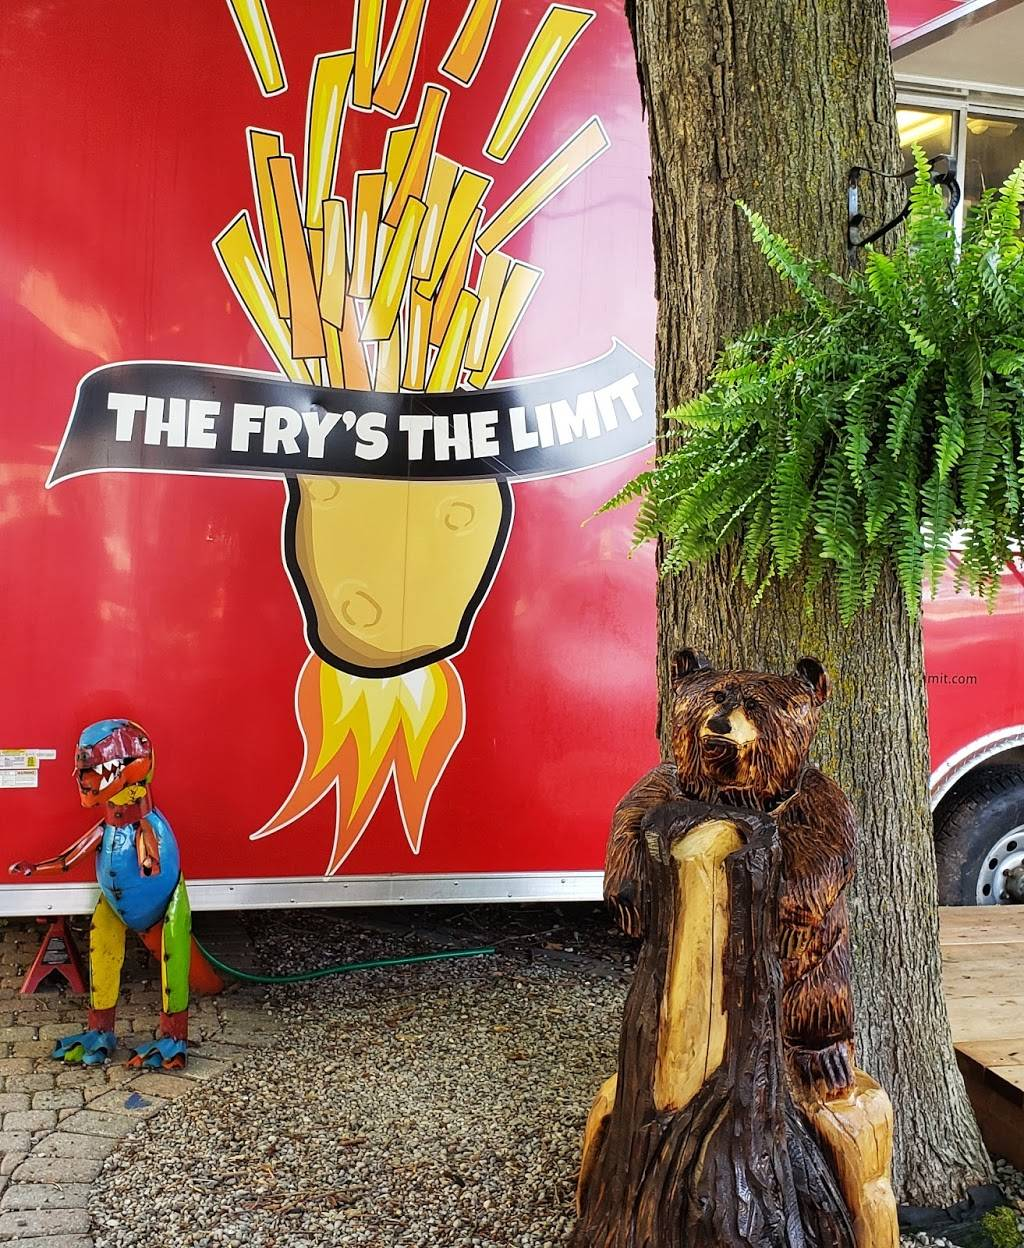 The Frys The Limit | restaurant | 245 Barrie St, Thornton, ON L0L 2N0, Canada | 7058815055 OR +1 705-881-5055